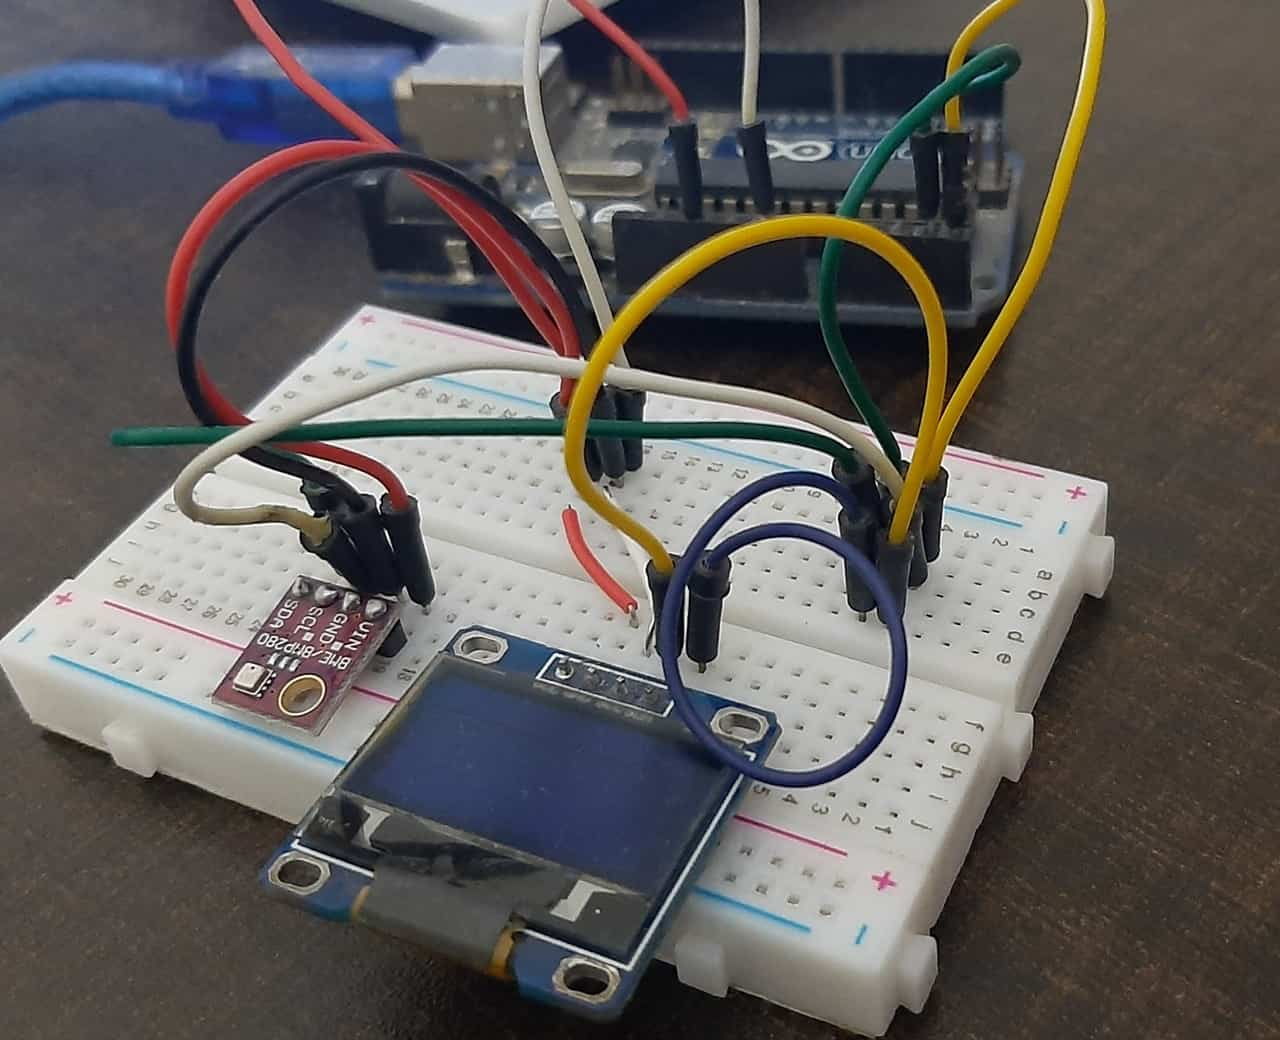 BME280 with Arduino Display Readings on OLED ( Arduino IDE)